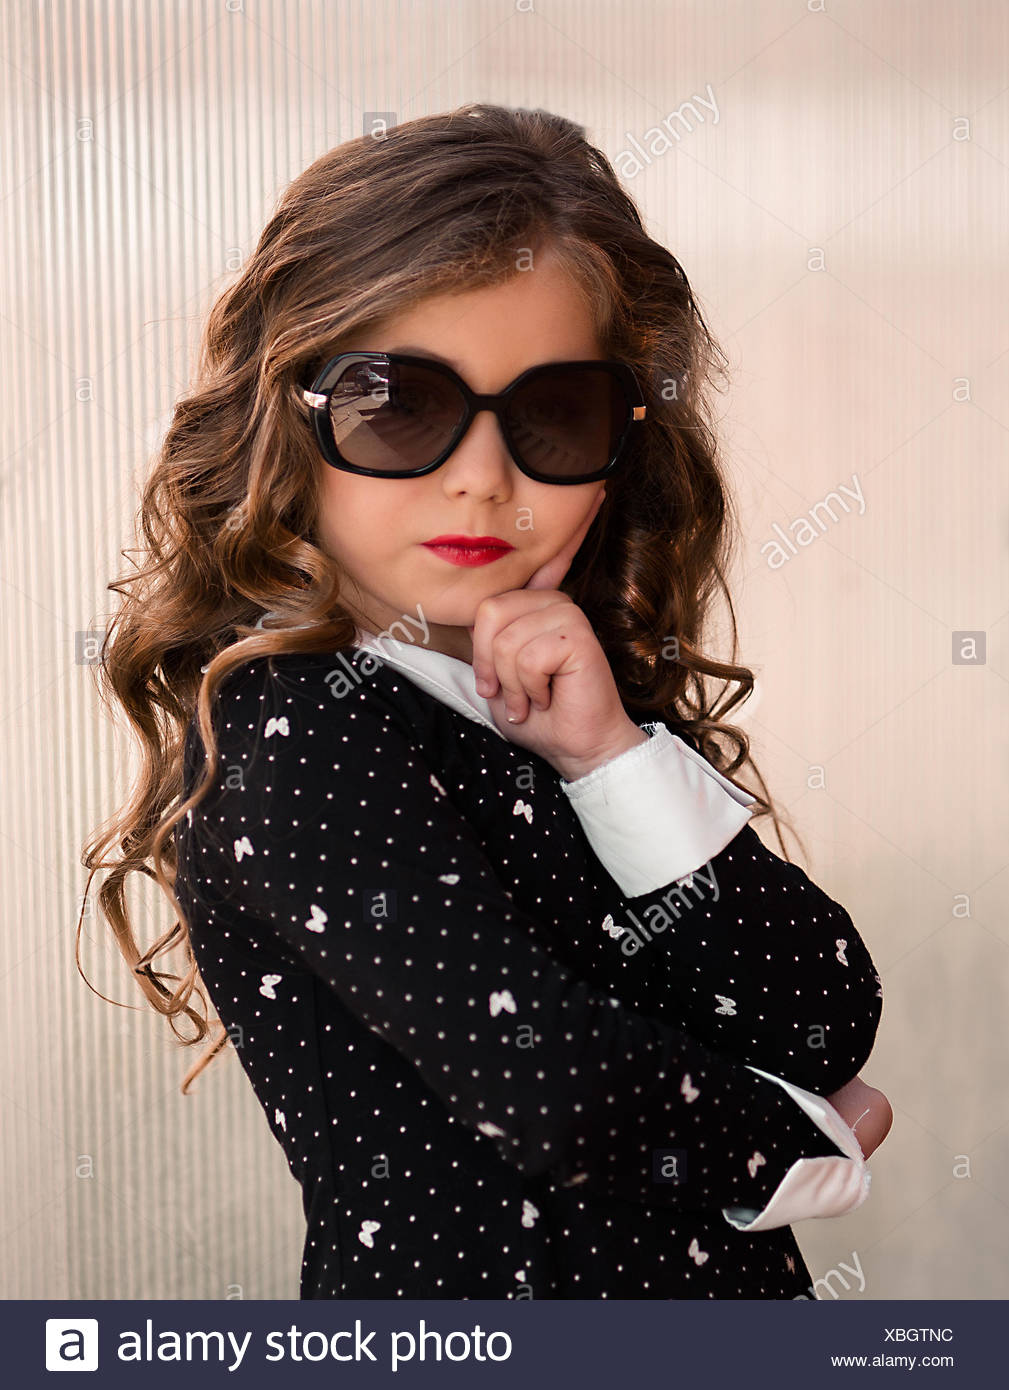 da9ecbf4f87 Fashion portrait of girl child. Sunglasses. Stylish and cute. Cheerful  serious little girl in sunglasses keeping arms crossed and looking up with  smile ...